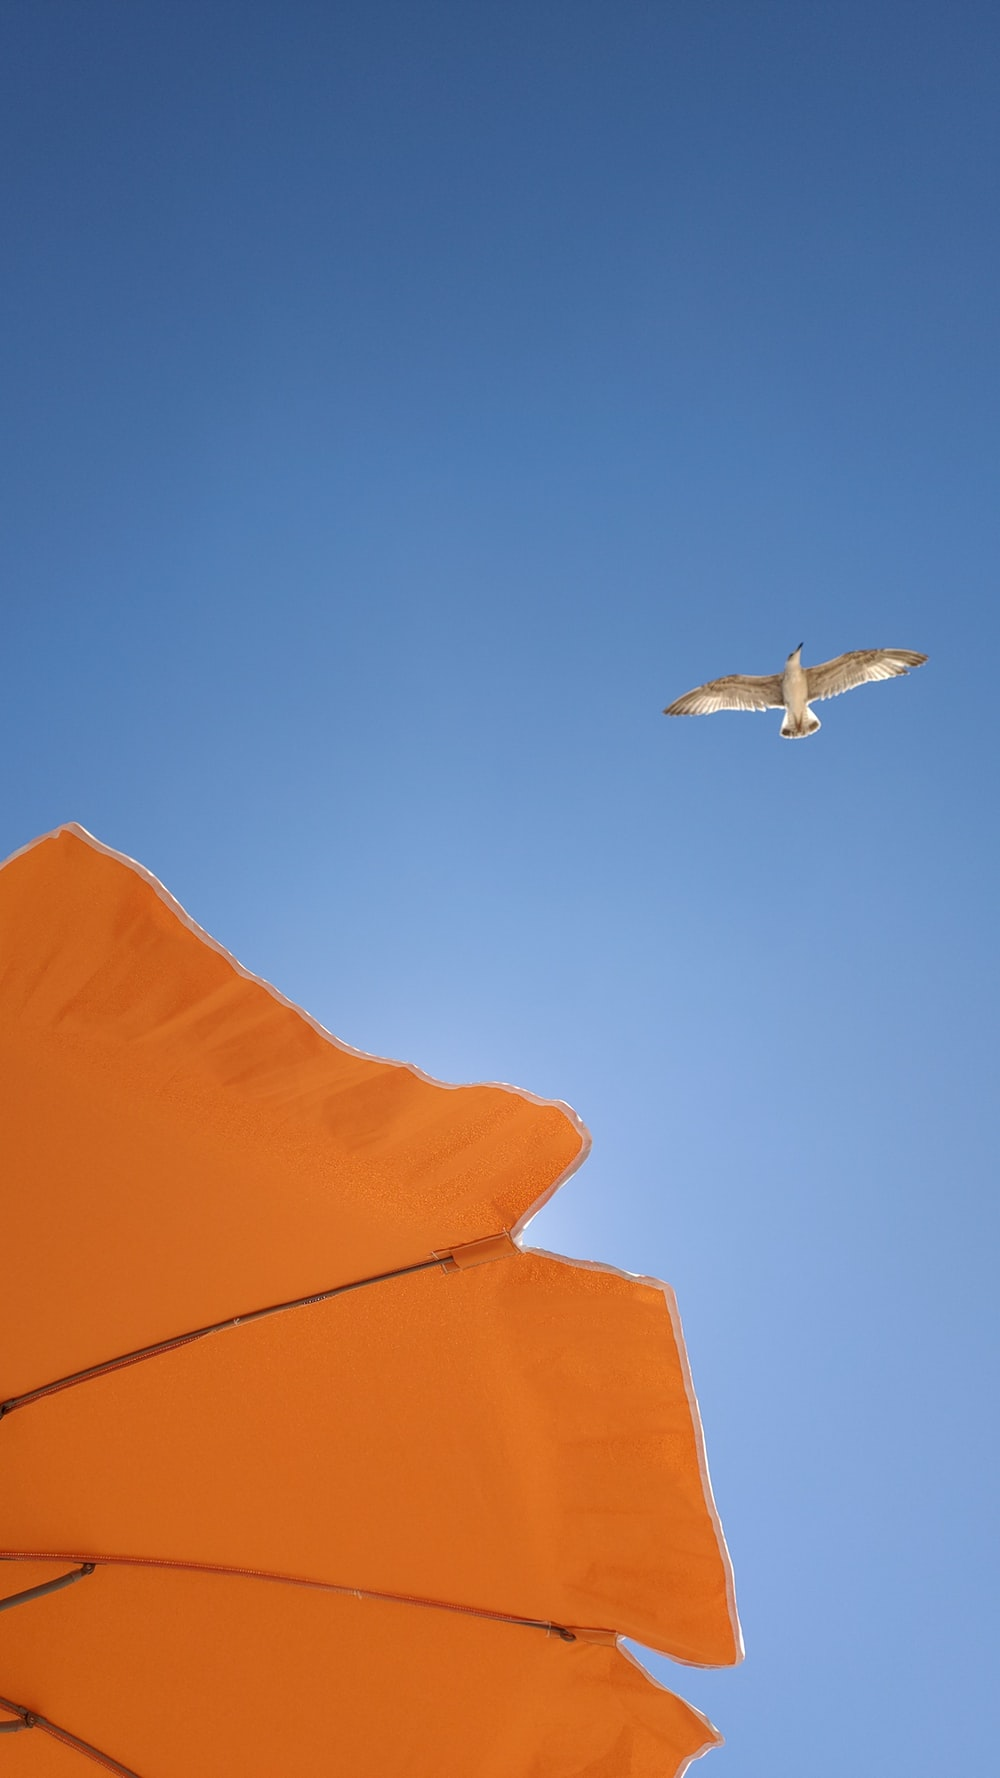 white bird flying over orange textile